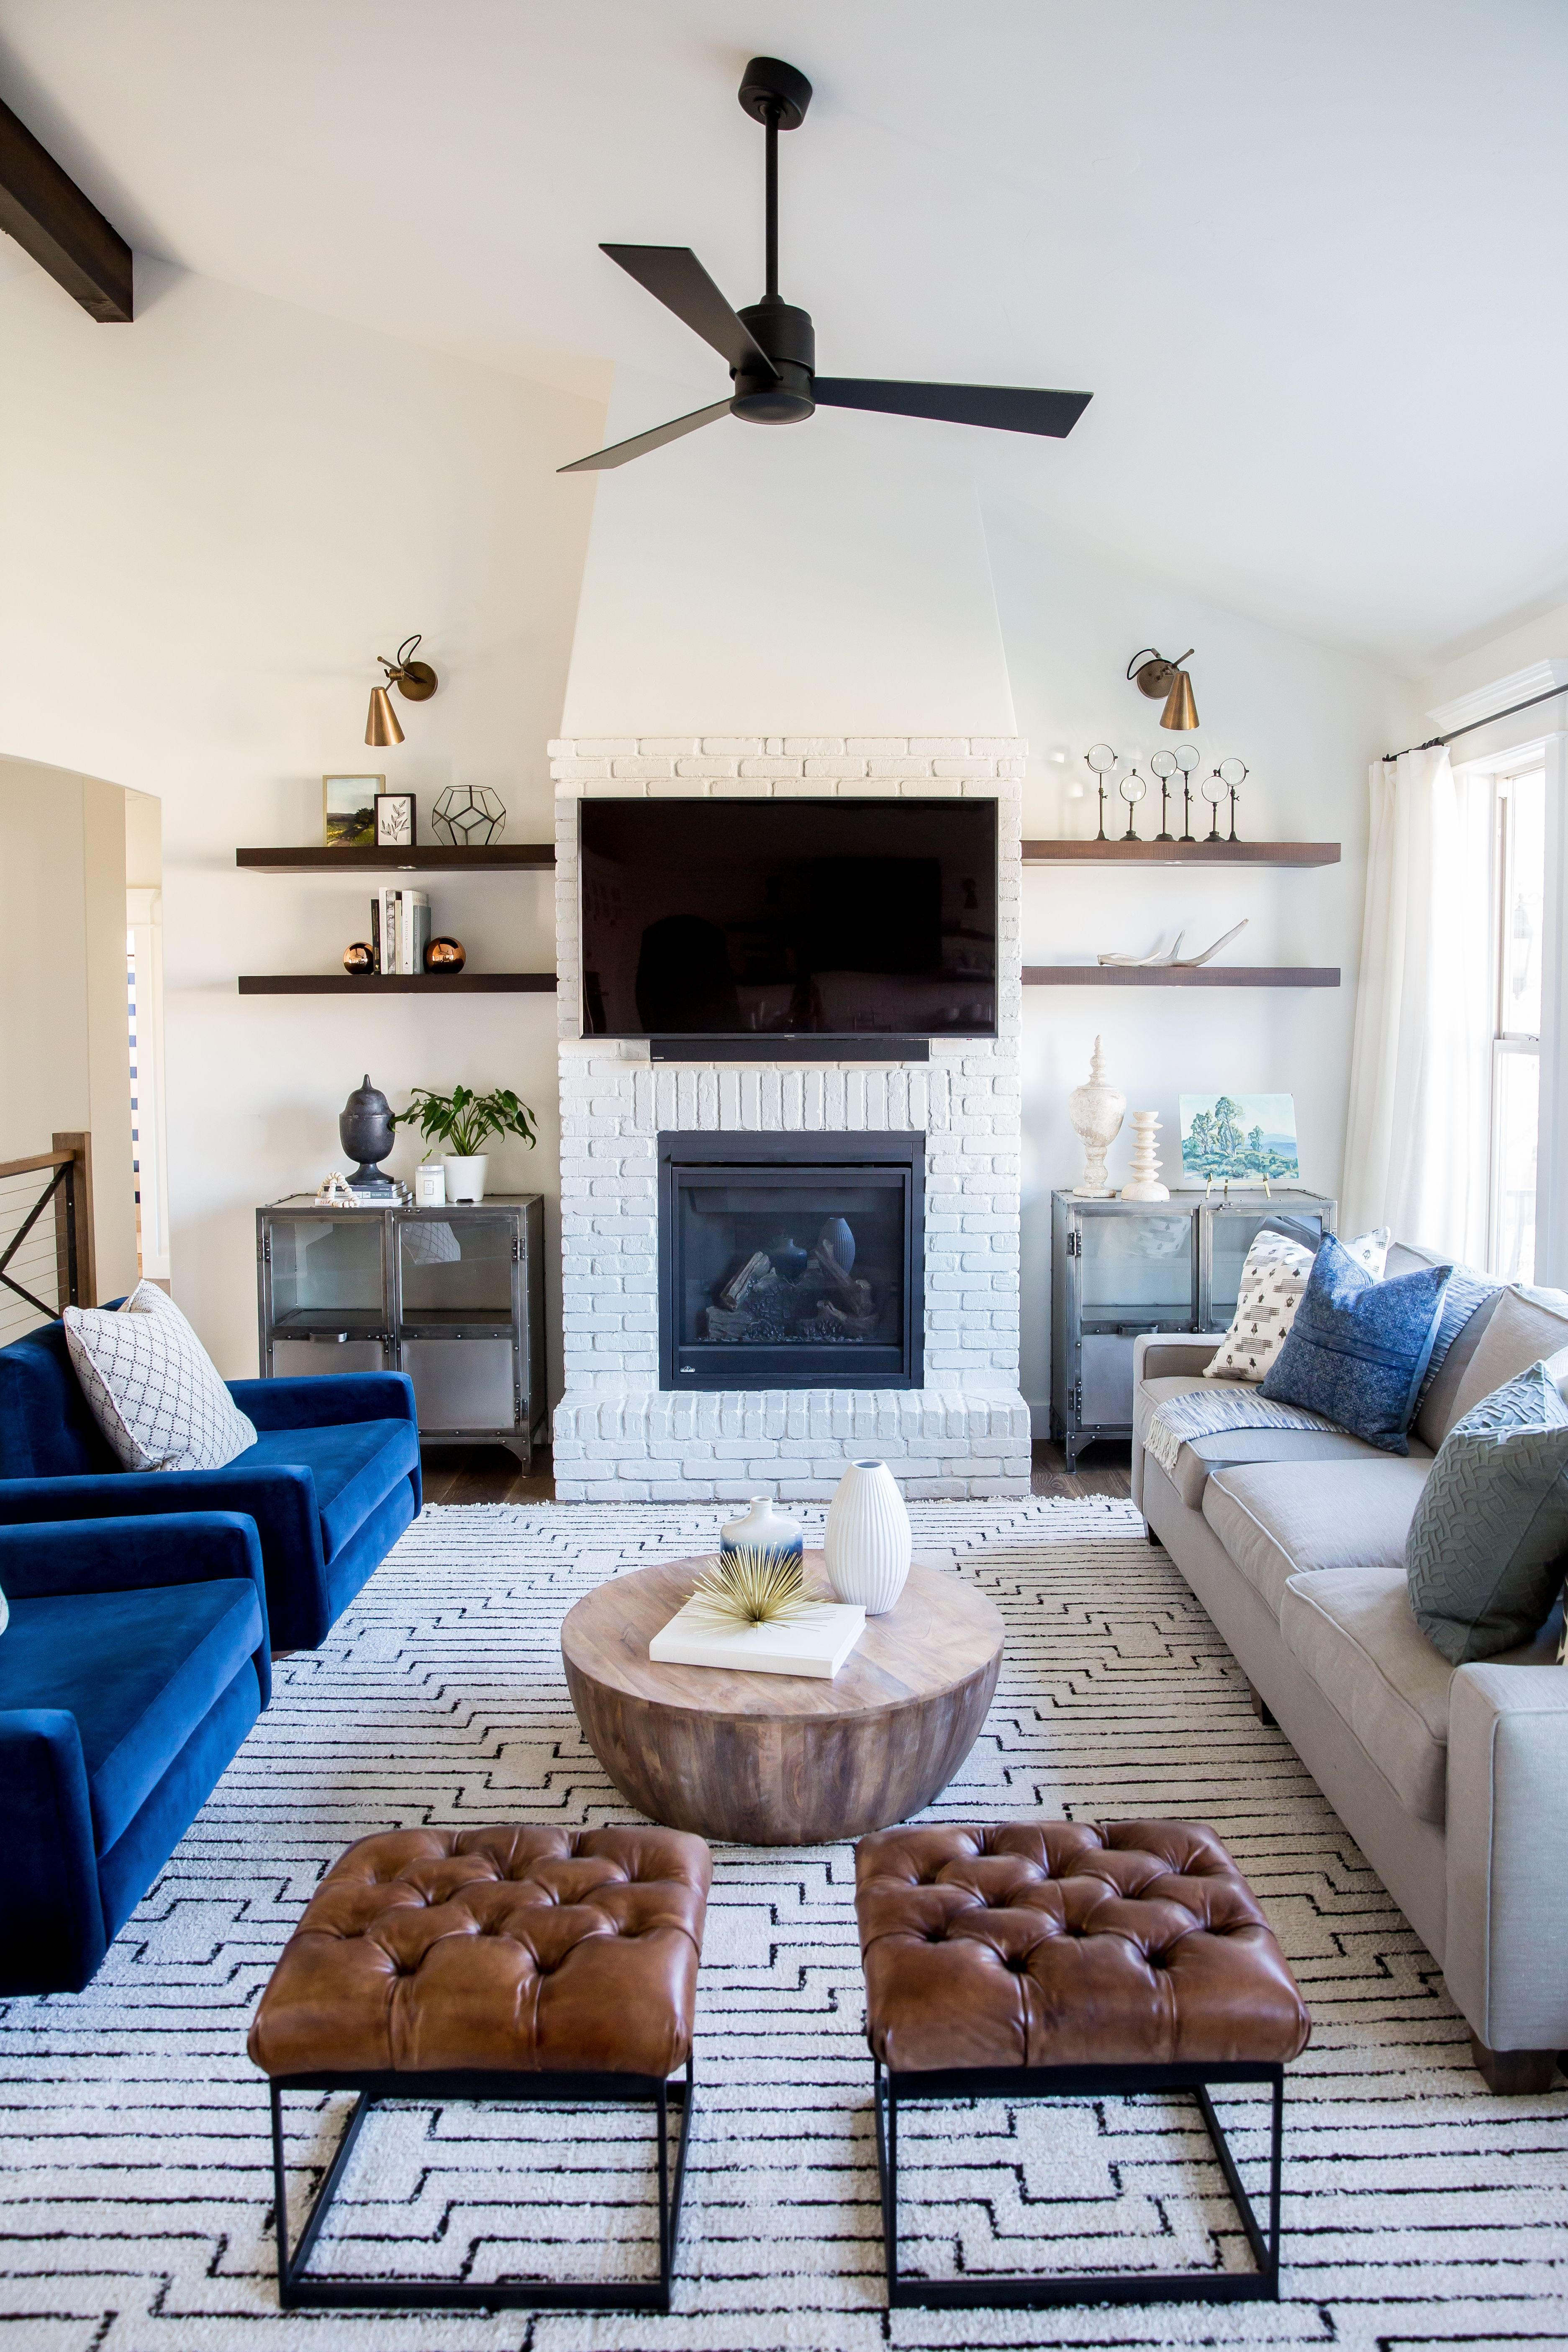 Small Living Roomwith Fireplace Ideas Fresh 20 Living Room with Fireplace that Will Warm You All Winter Dream House